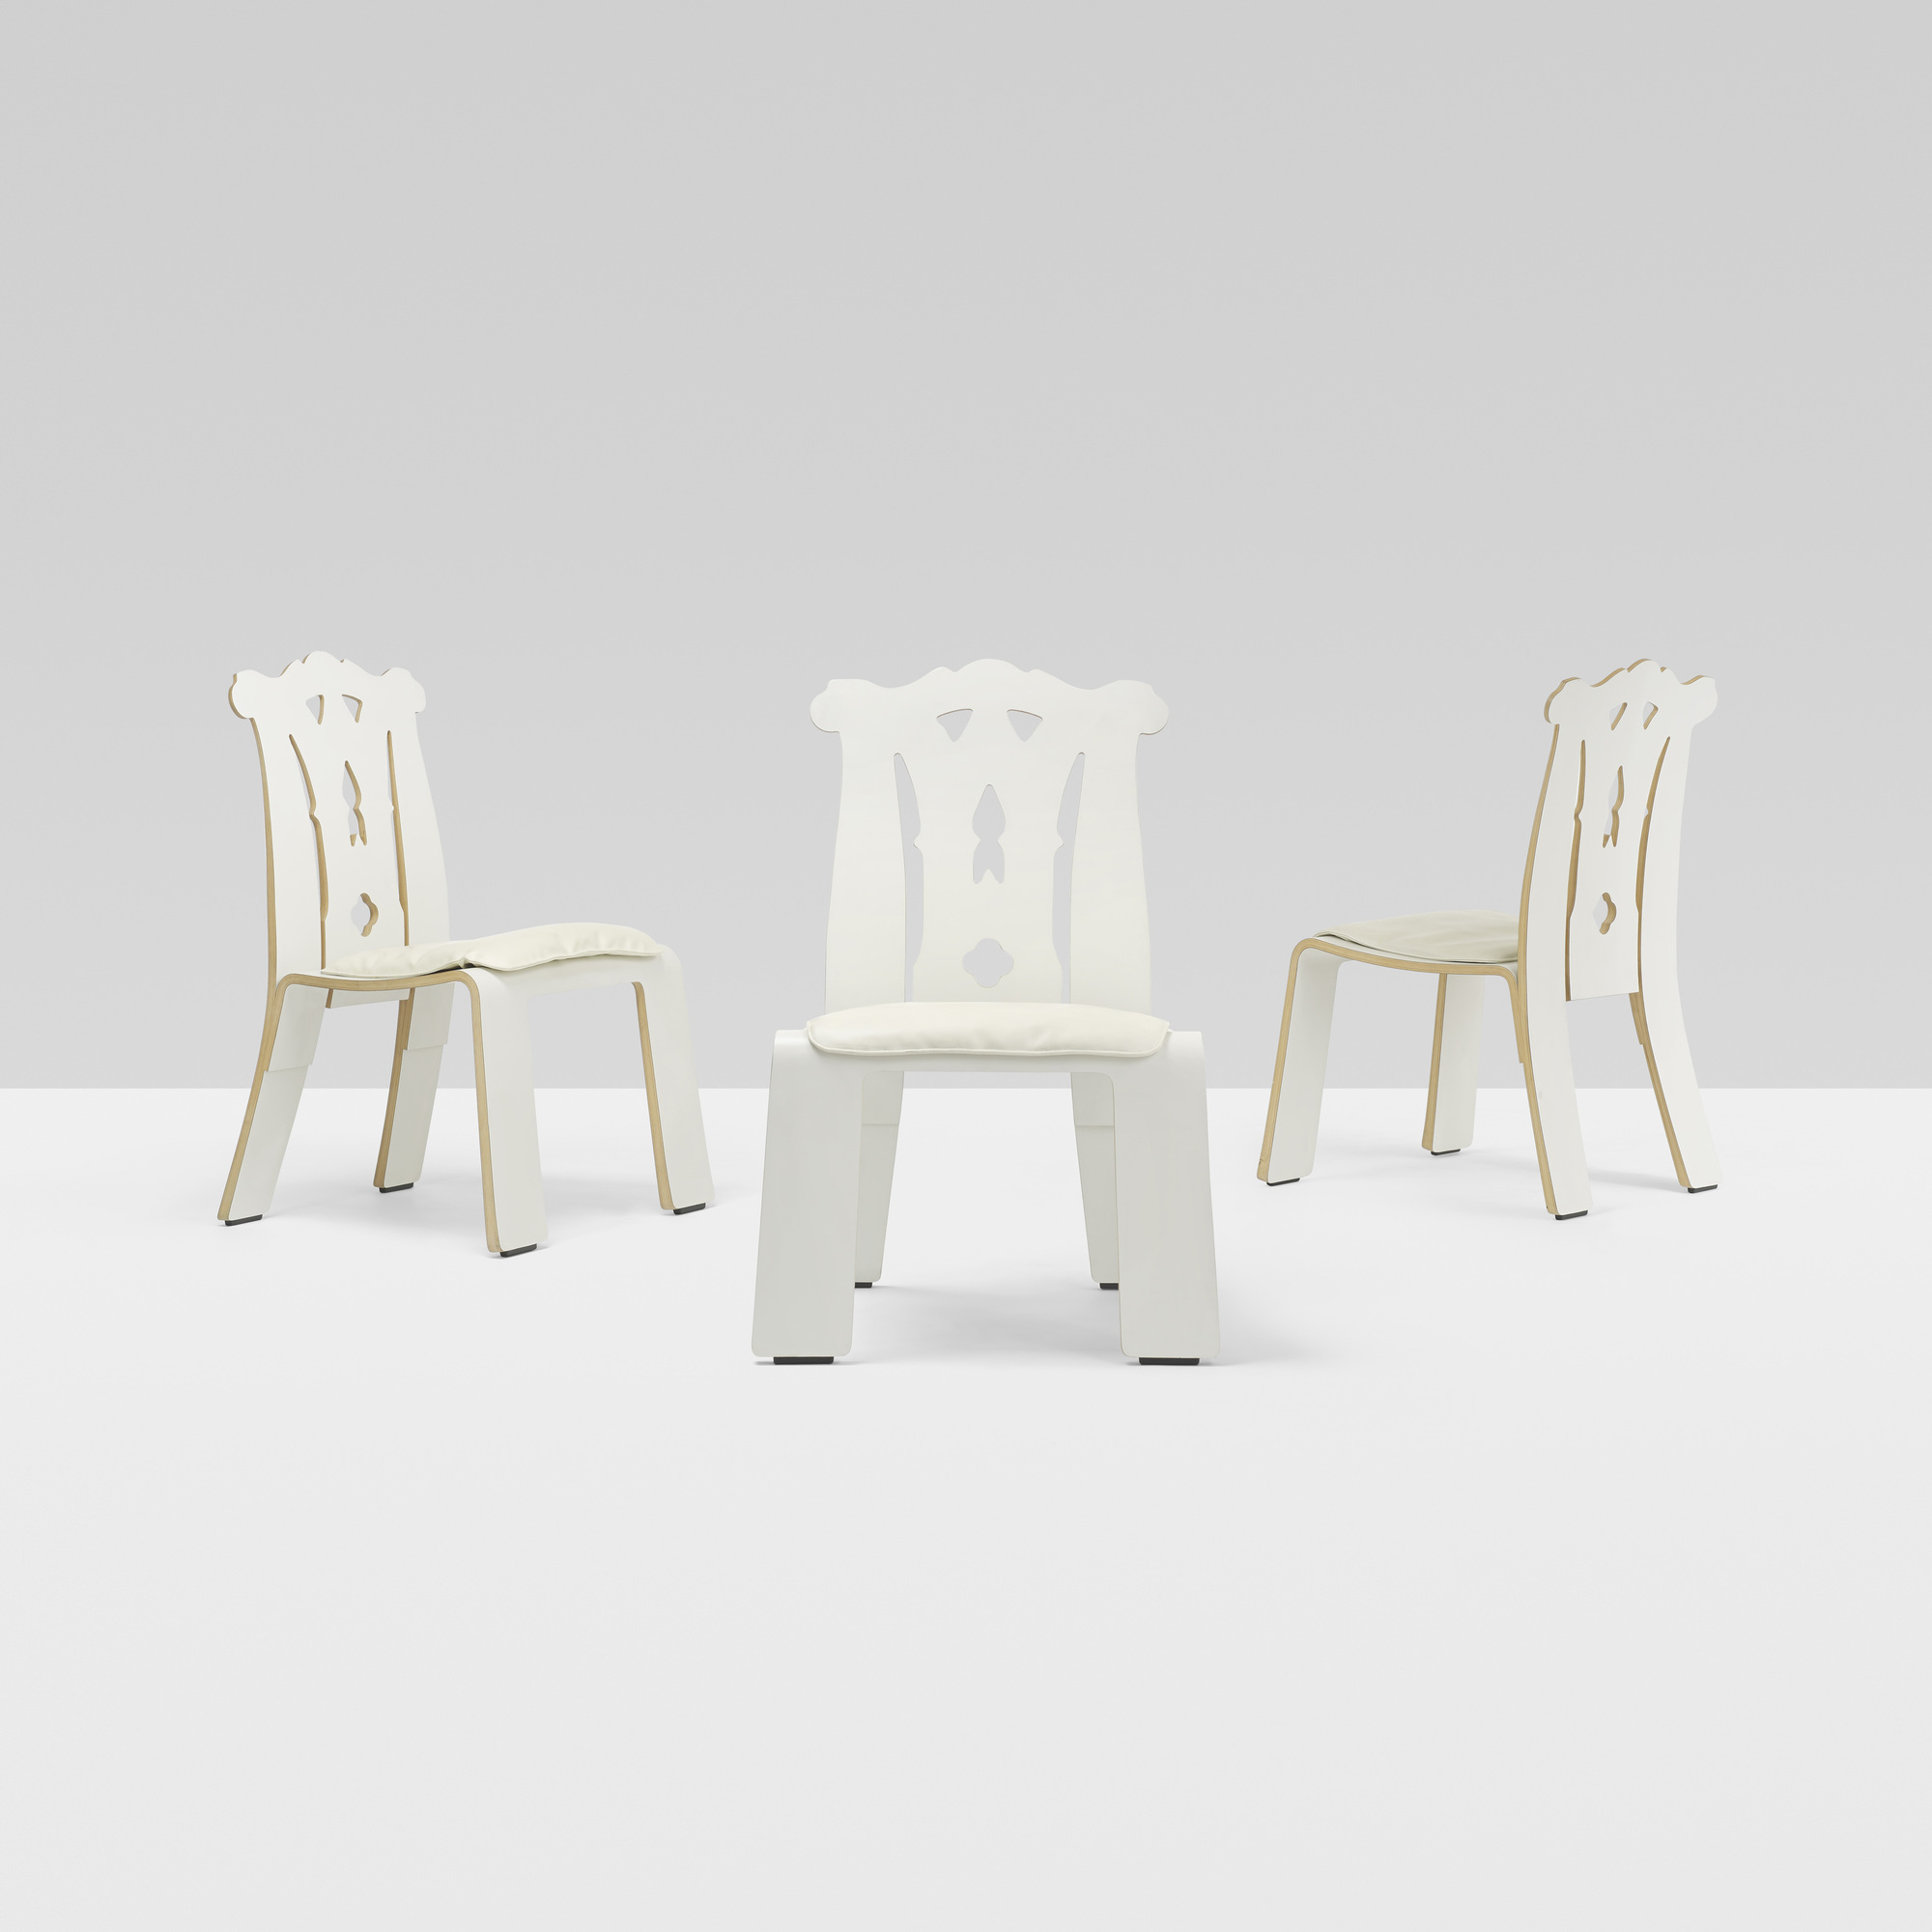 281: Robert Venturi / Chippendale chairs, set of six (2 of 4)